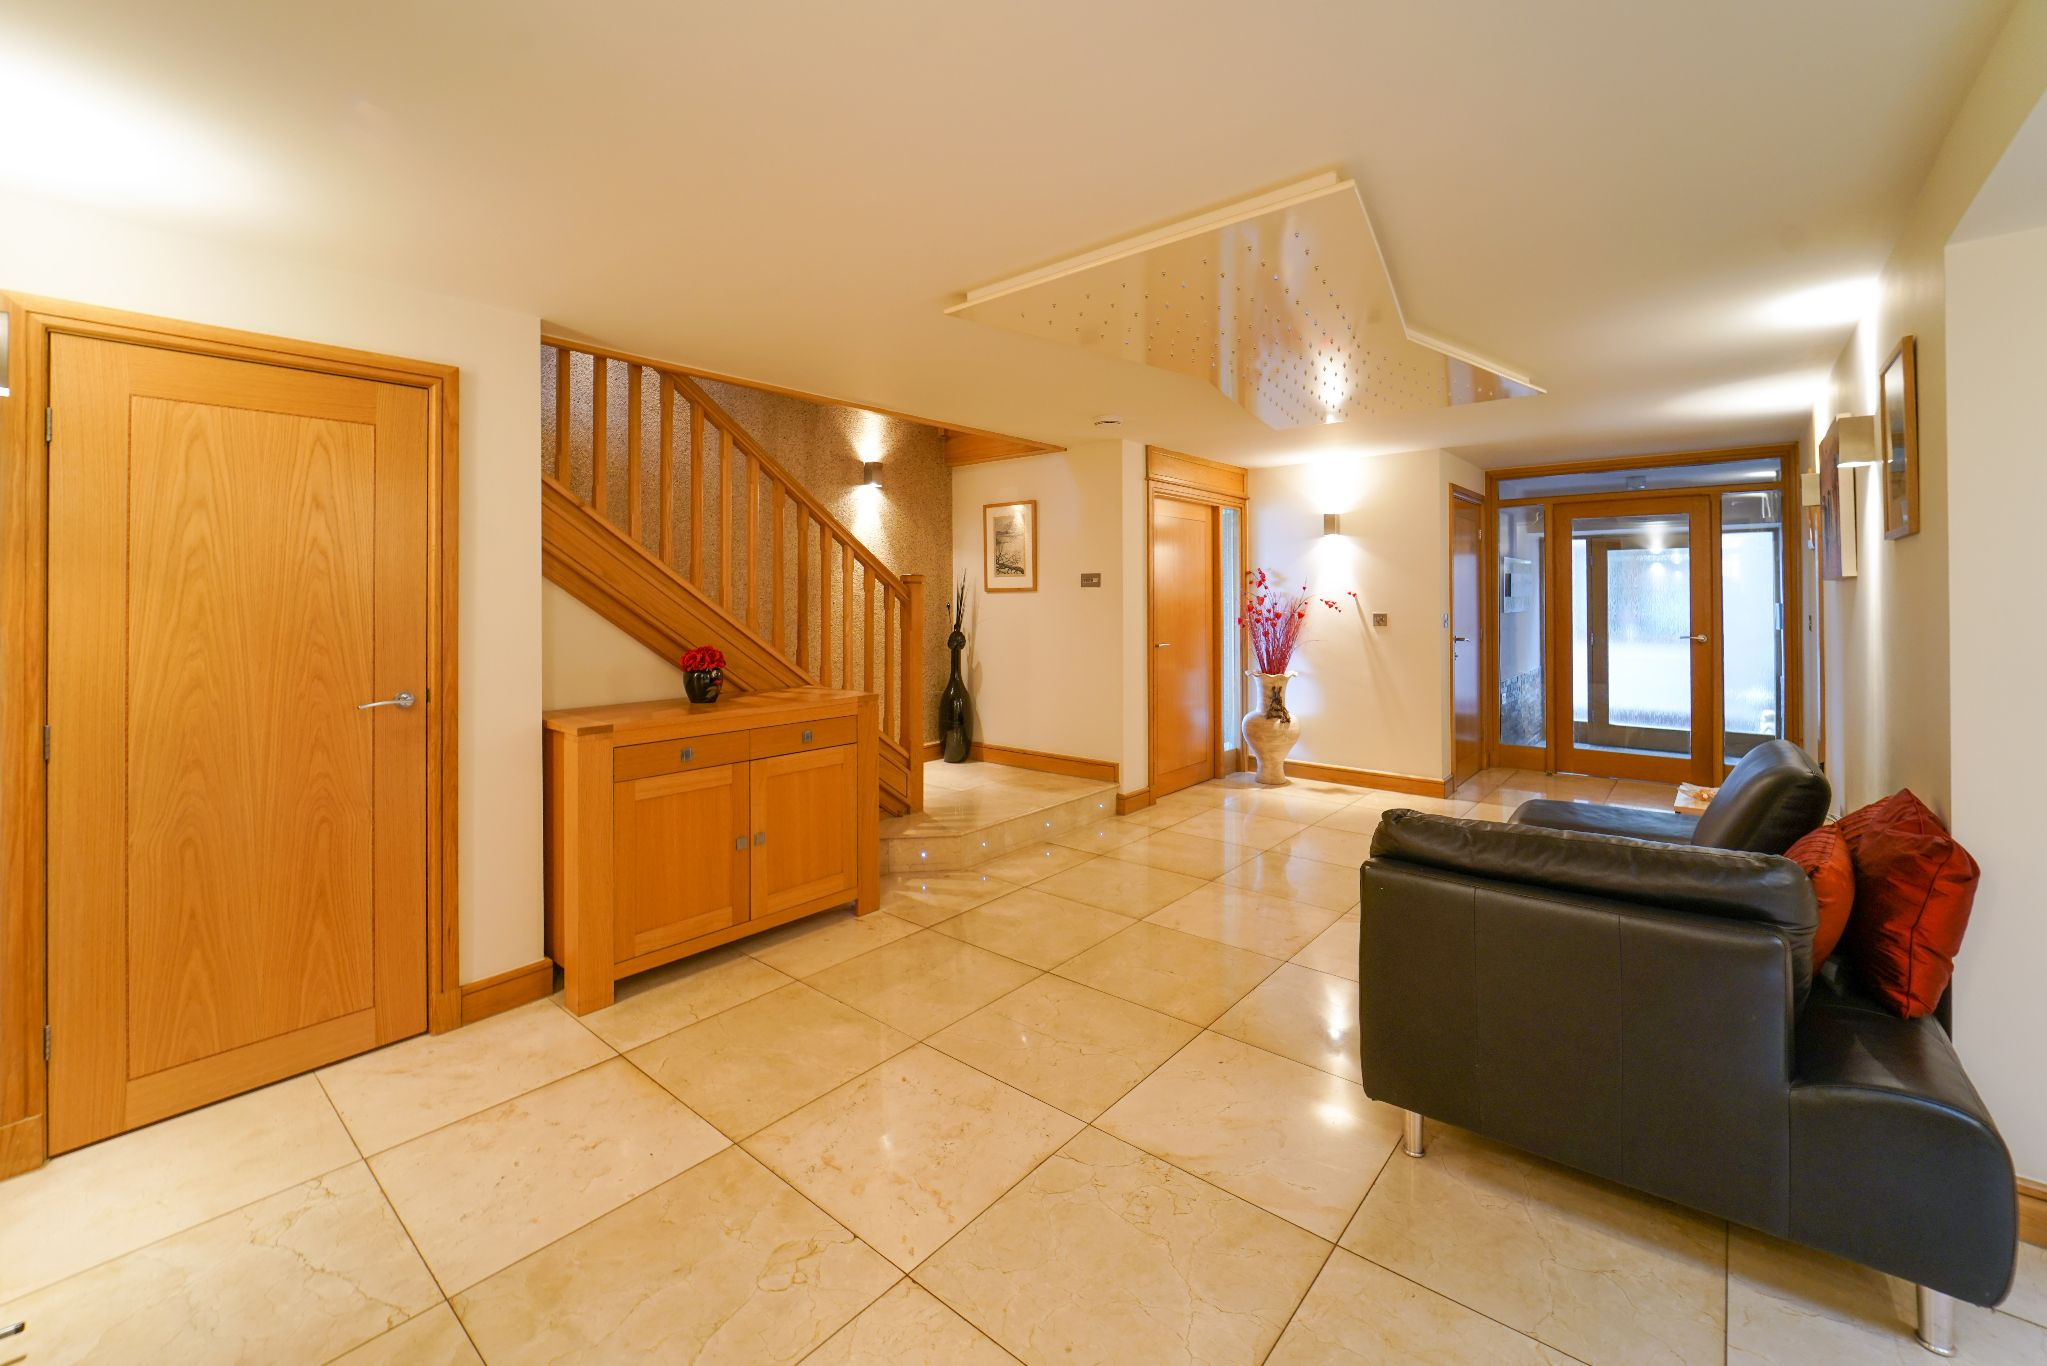 5 bedroom barn conversion house For Sale in Bolton - Photograph 12